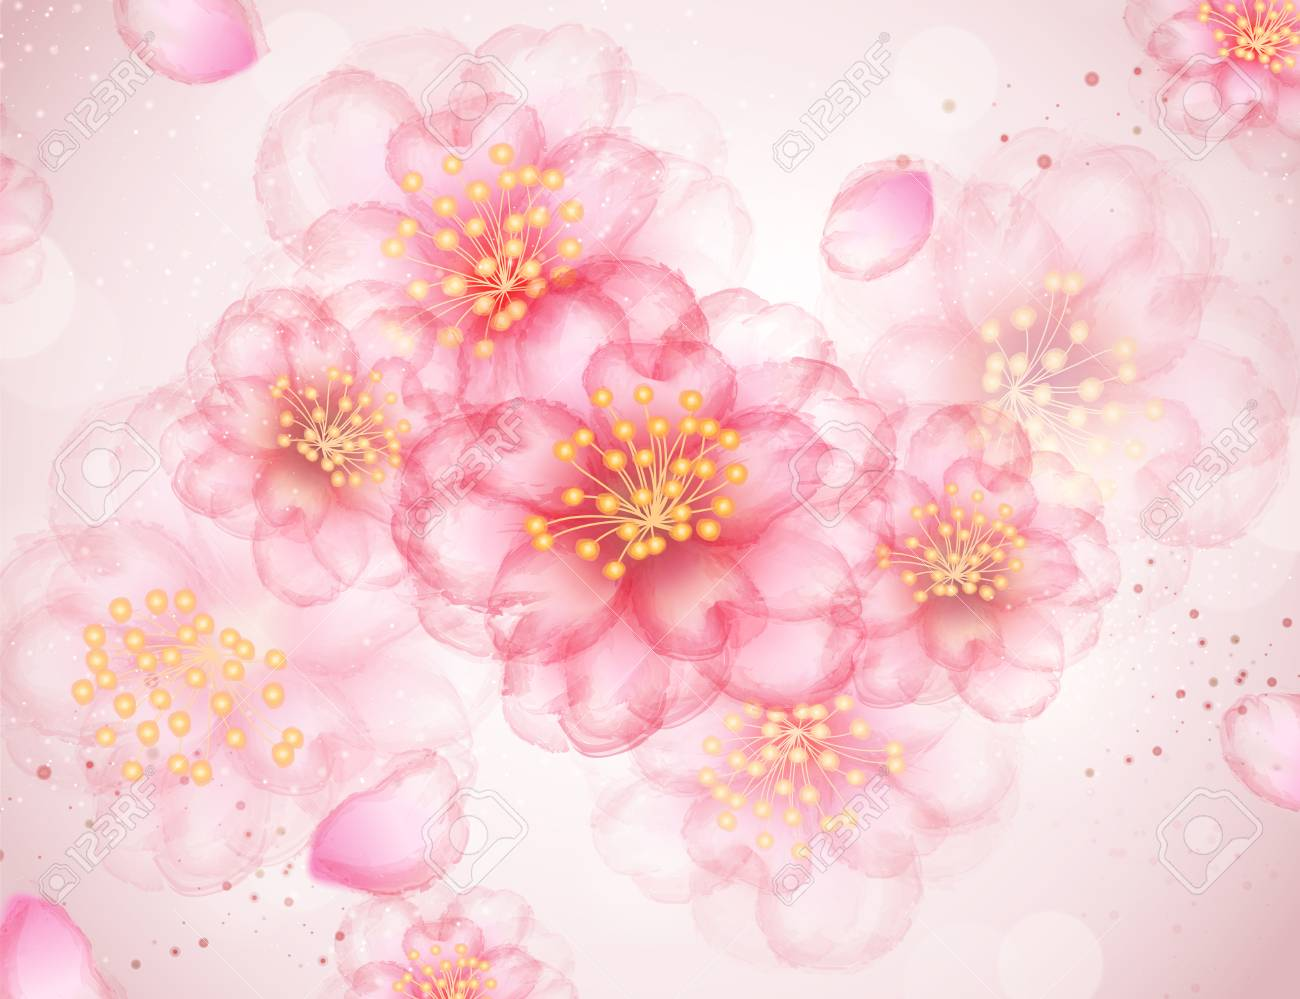 Light Pink Flowers Background For Romantic Situation Royalty Free